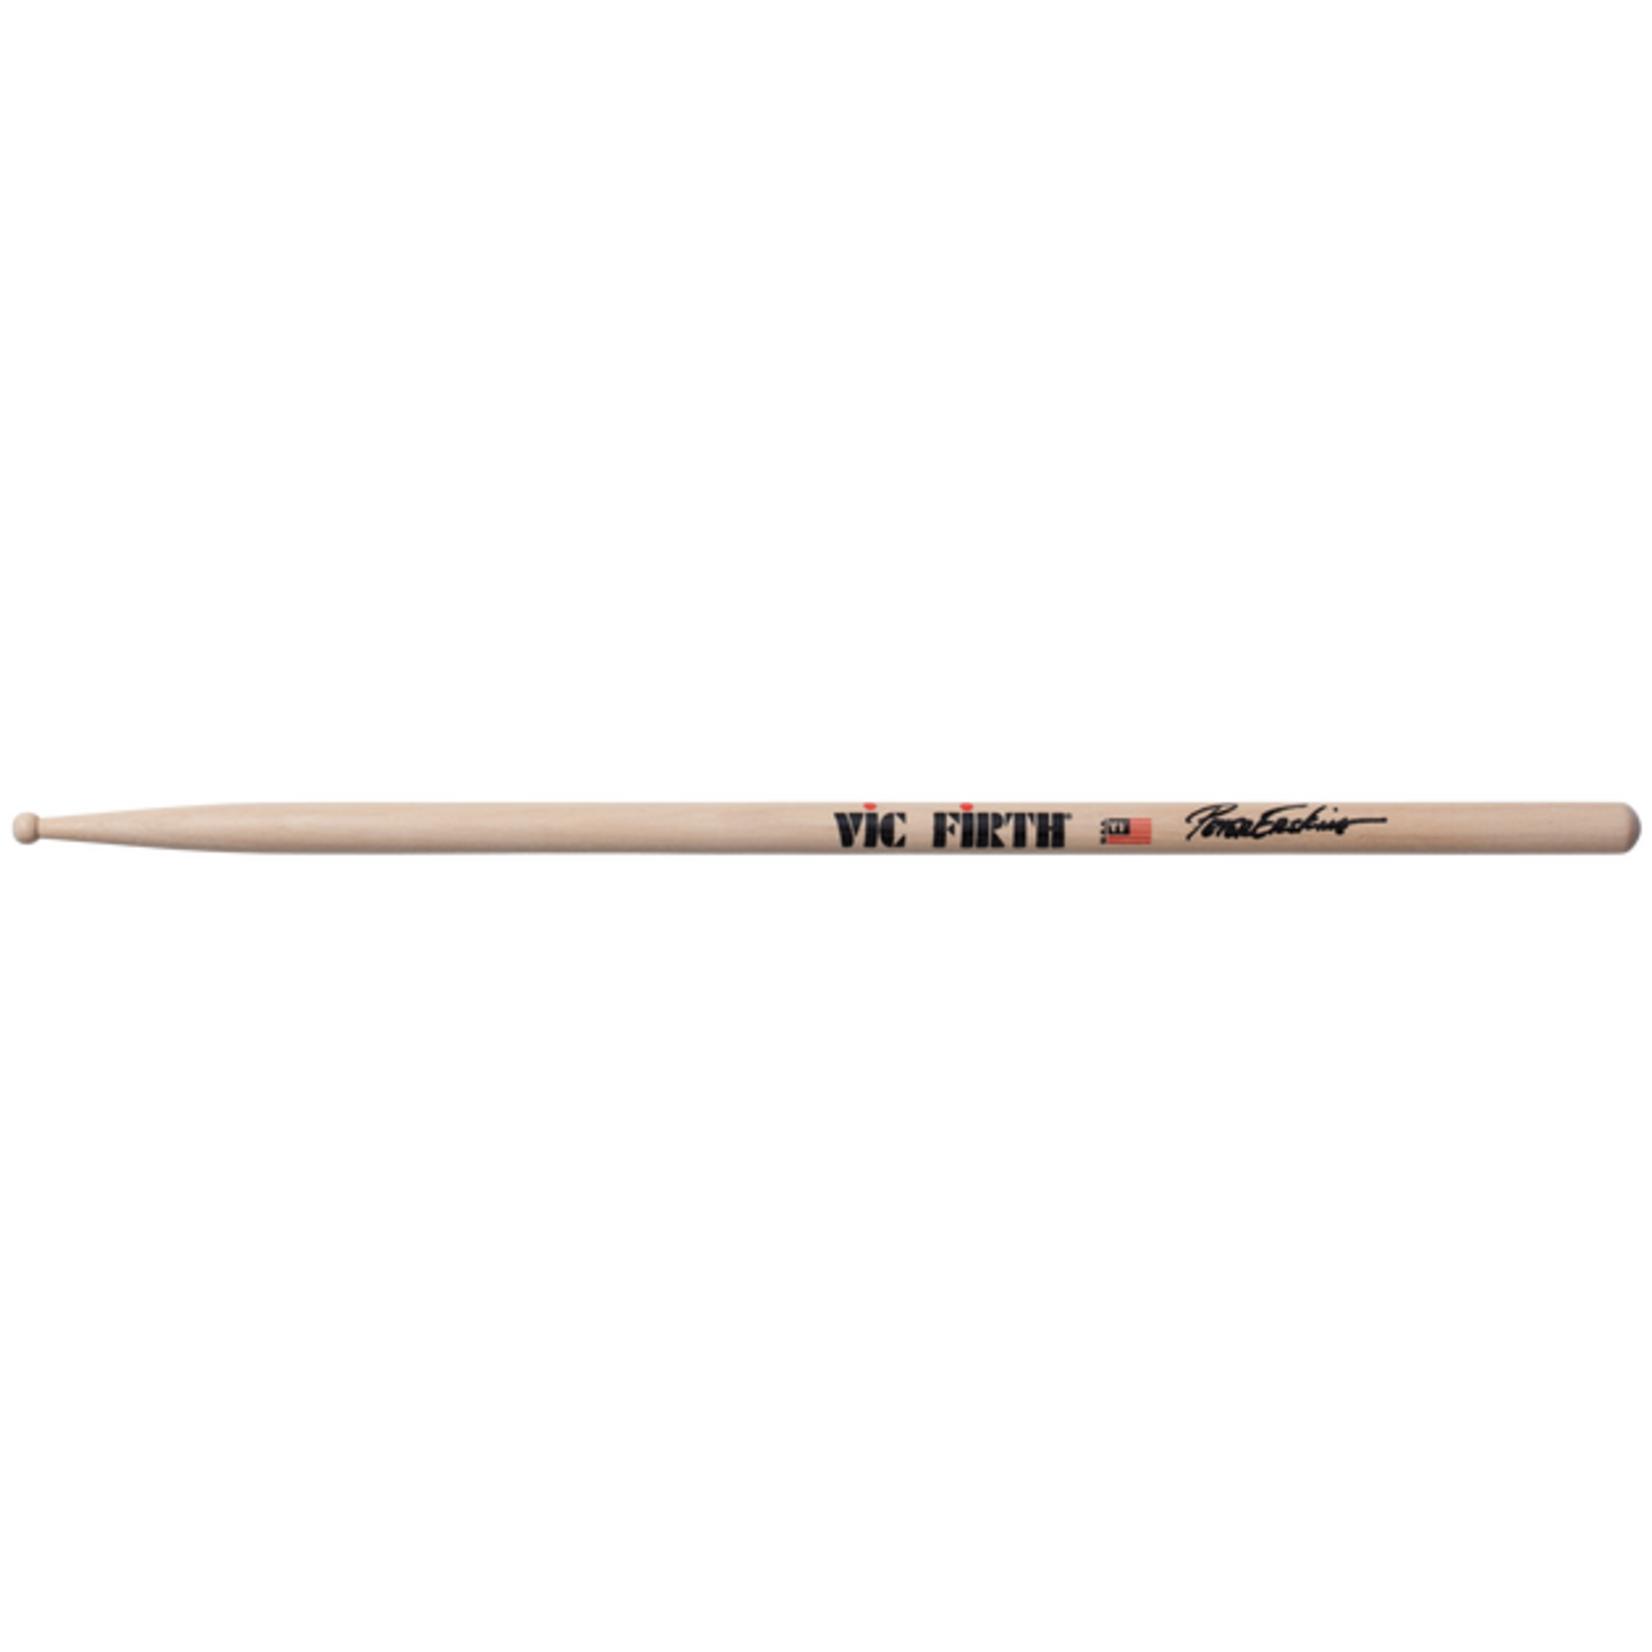 Vic Firth VIC FIRTH SIGNATURE SERIES PETER ERSKINE WOOD TIP (PAIR)